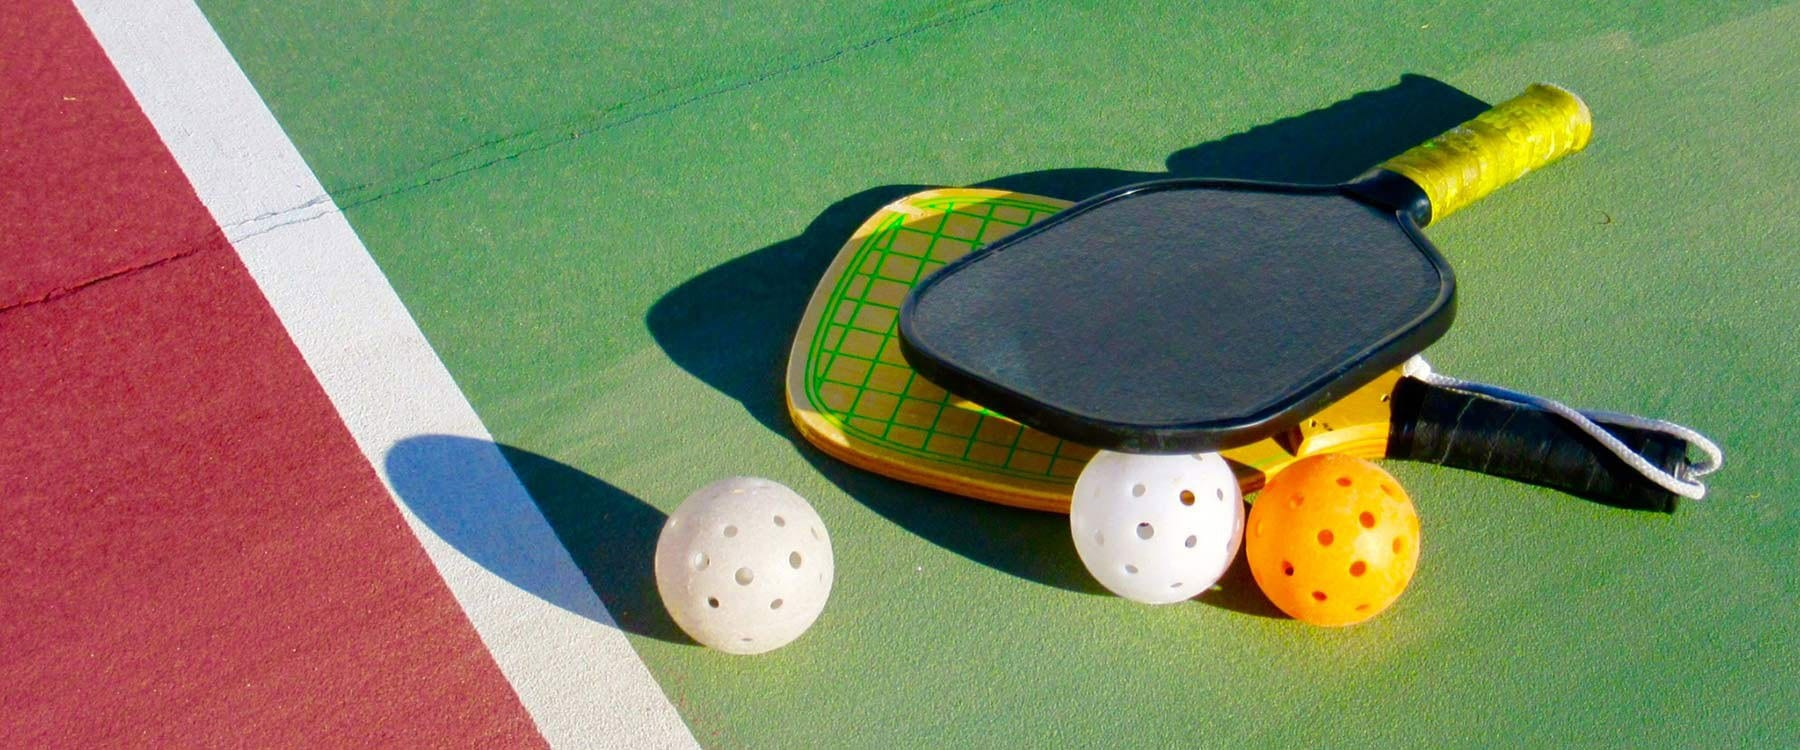 Pickle Ball for beginners or advanced players.